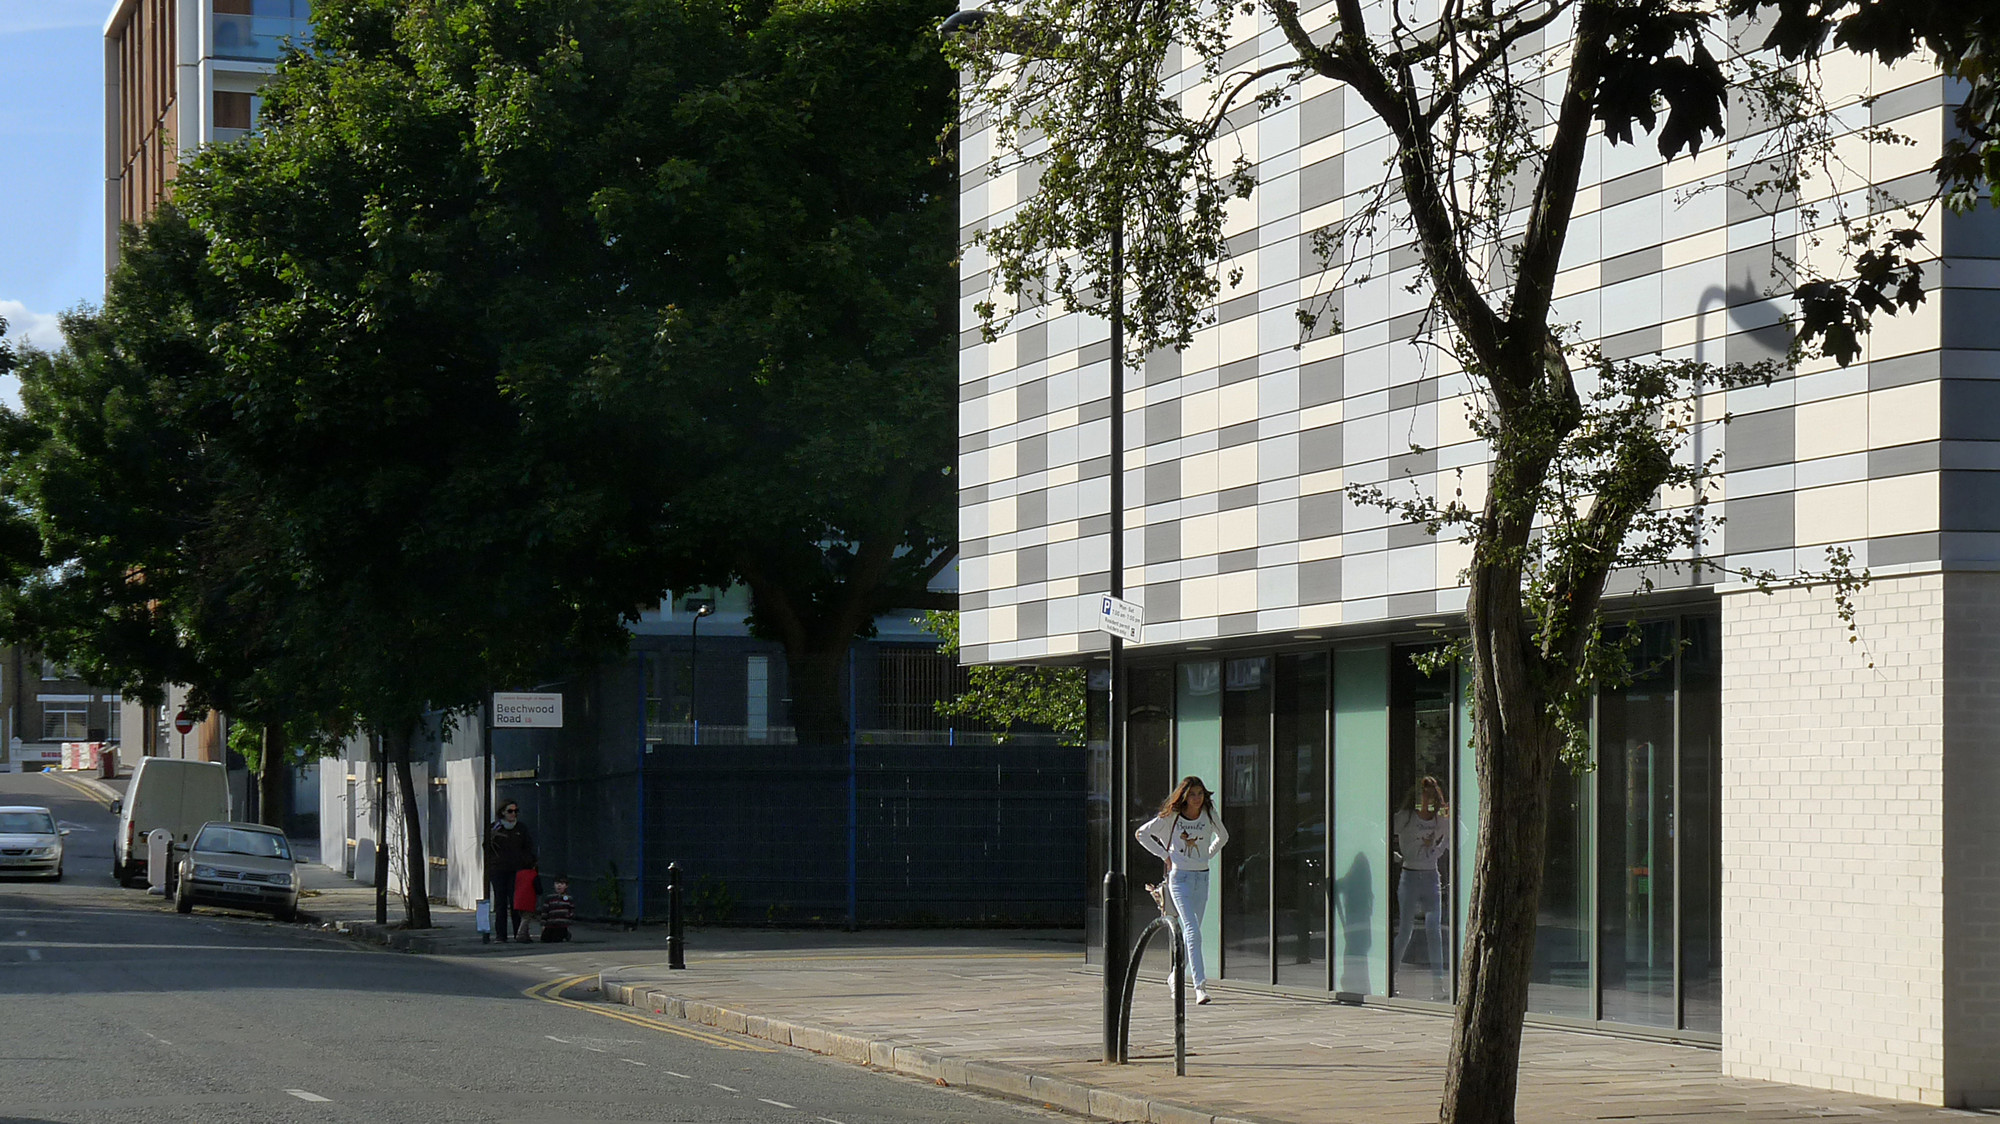 Forest Road Youth Centre / Matthew Lloyd Architects